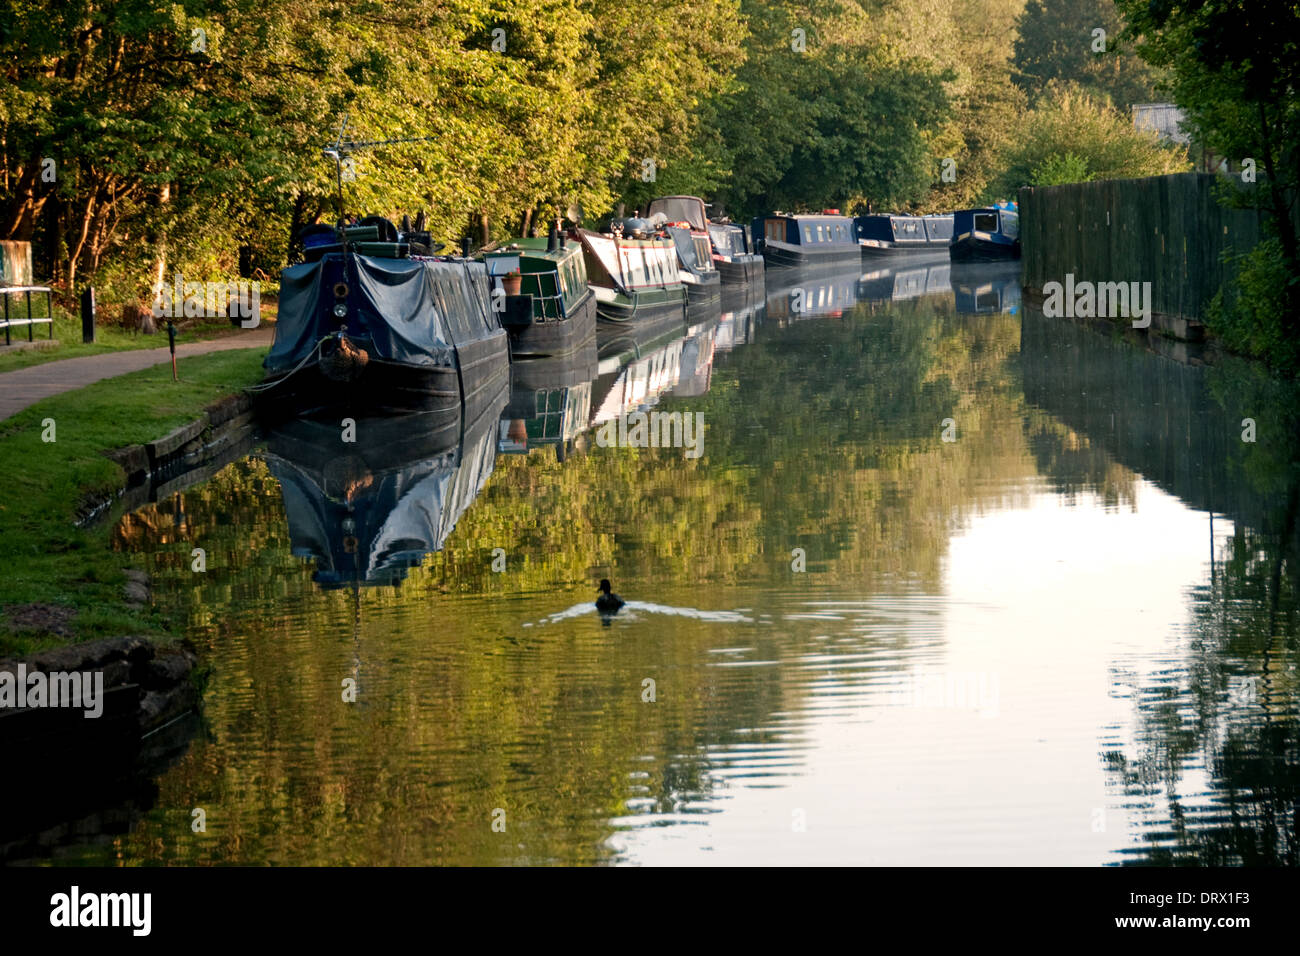 Oxford canal and moored narrow boats - Stock Image